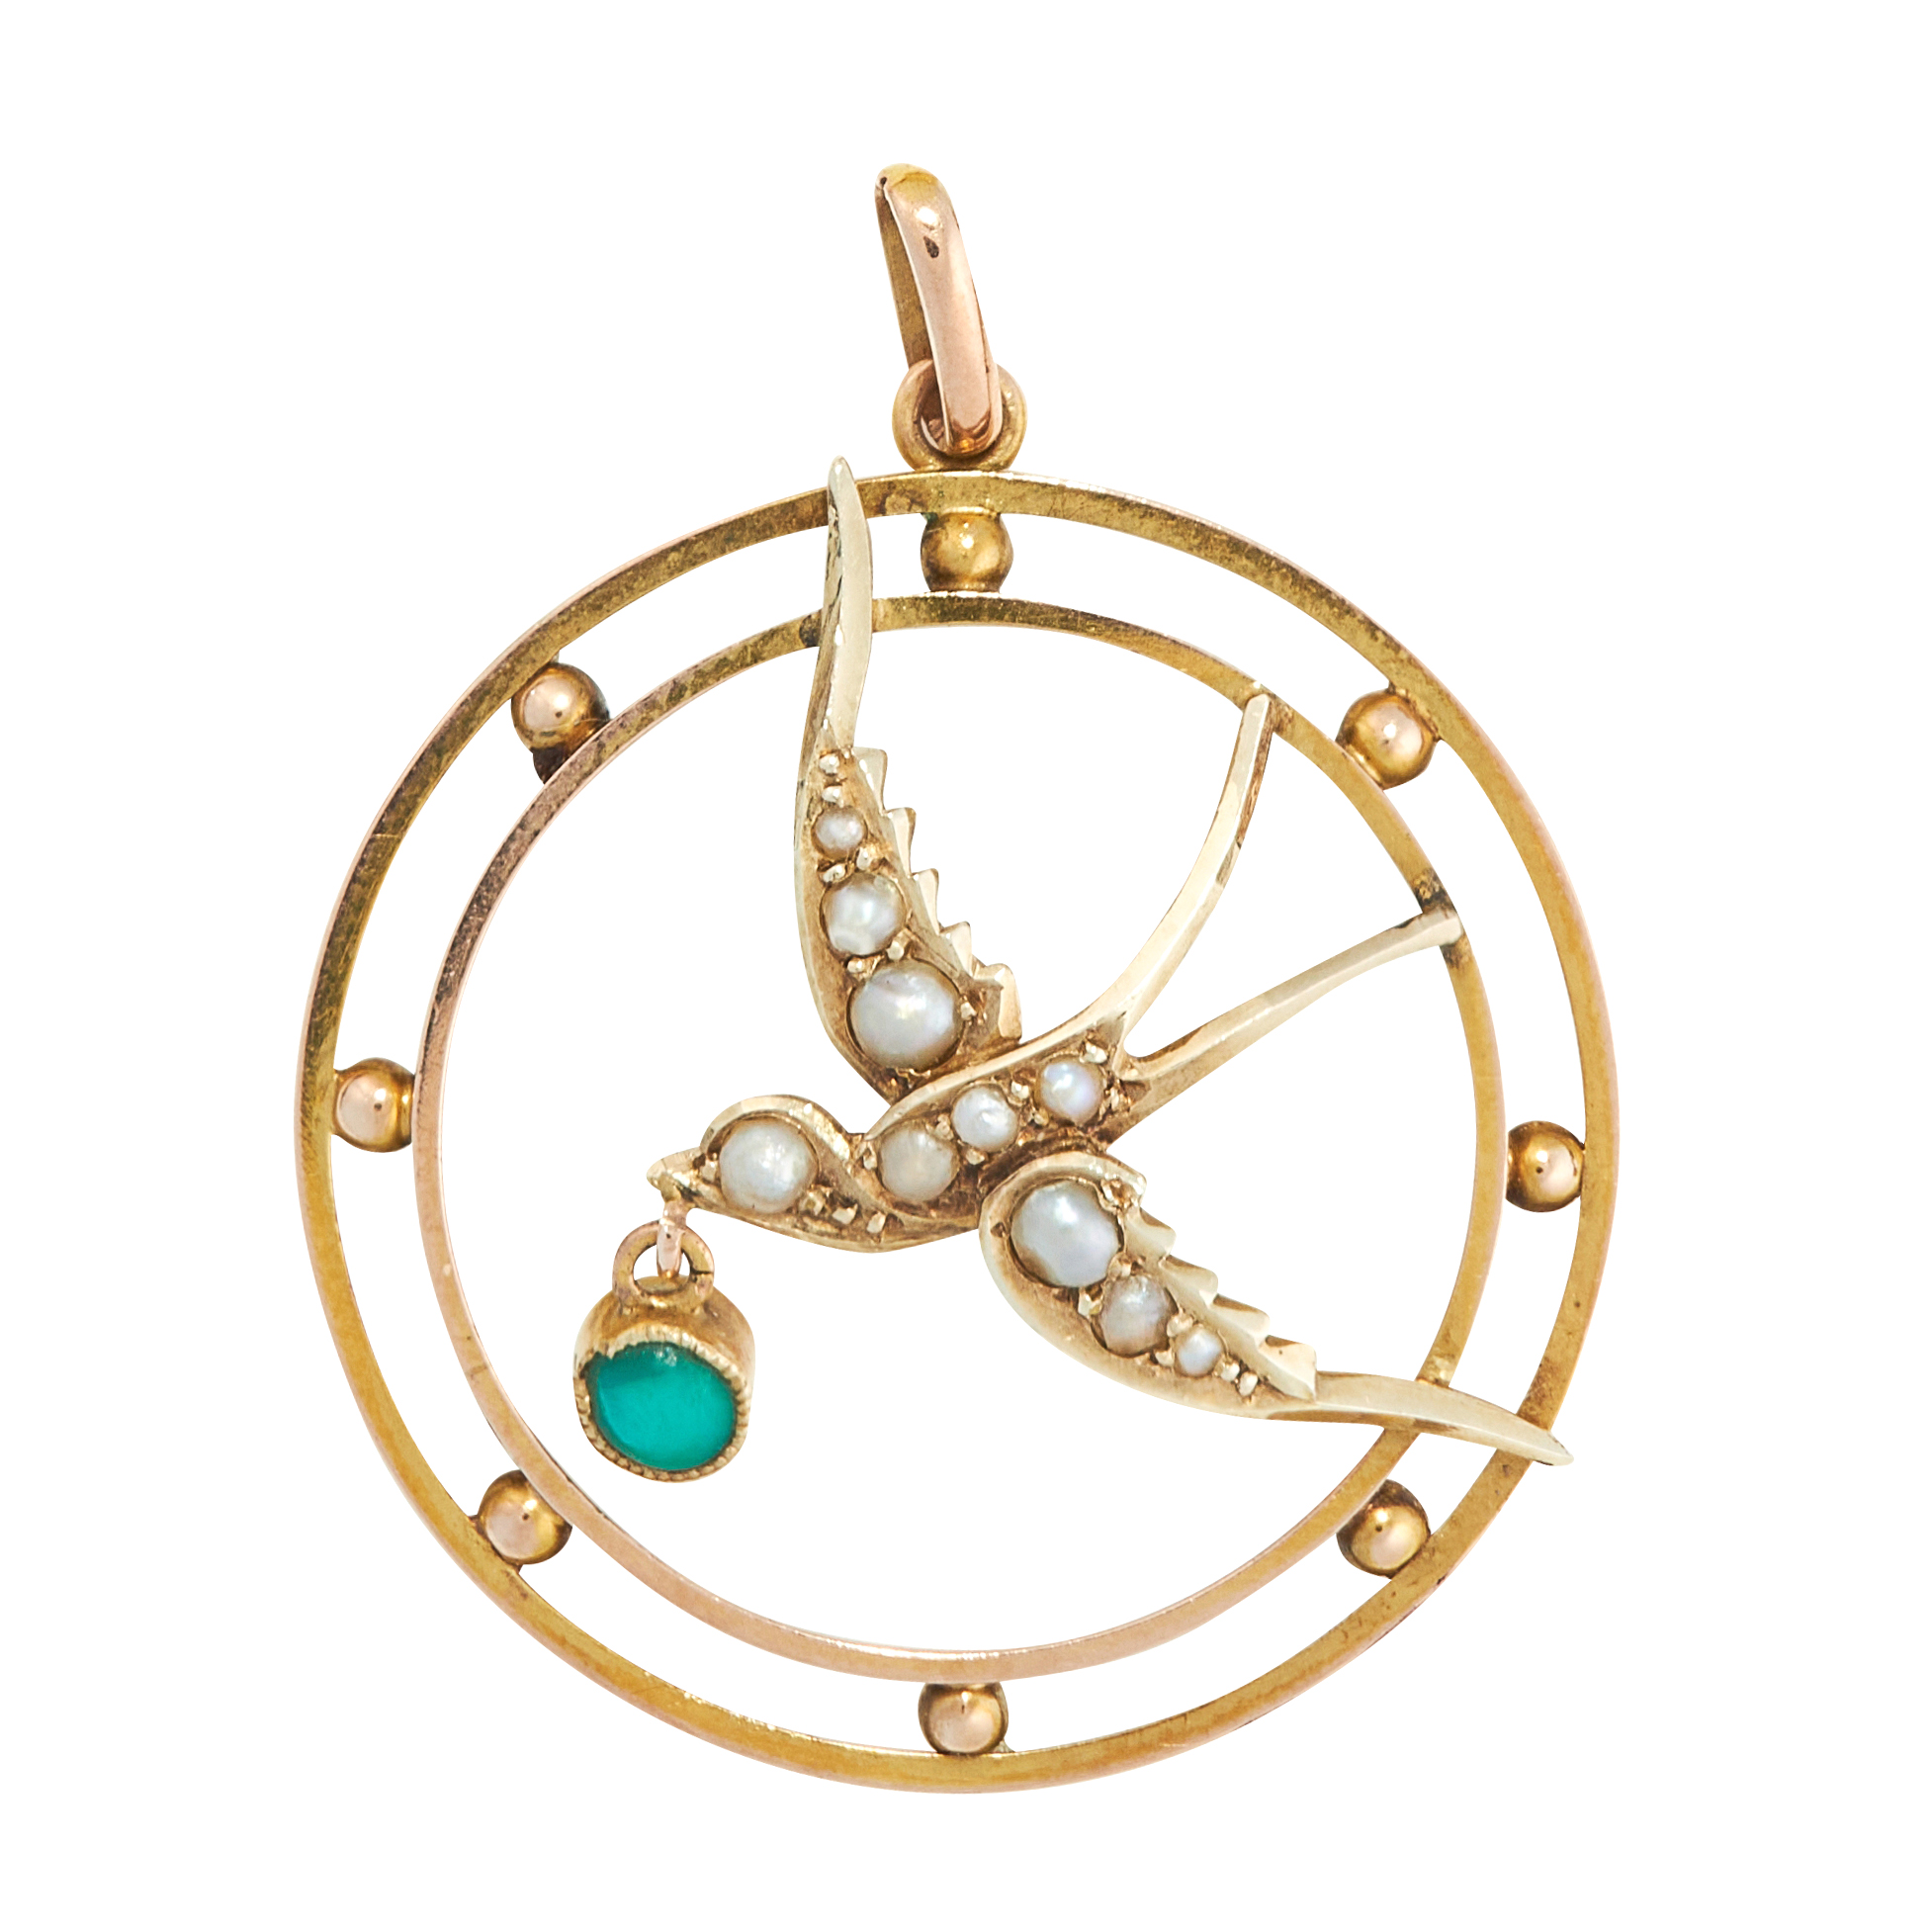 AN ANTIQUE TURQUOISE AND PEARL PENDANT, CIRCA 1900 in yellow gold, of circular design, set at the